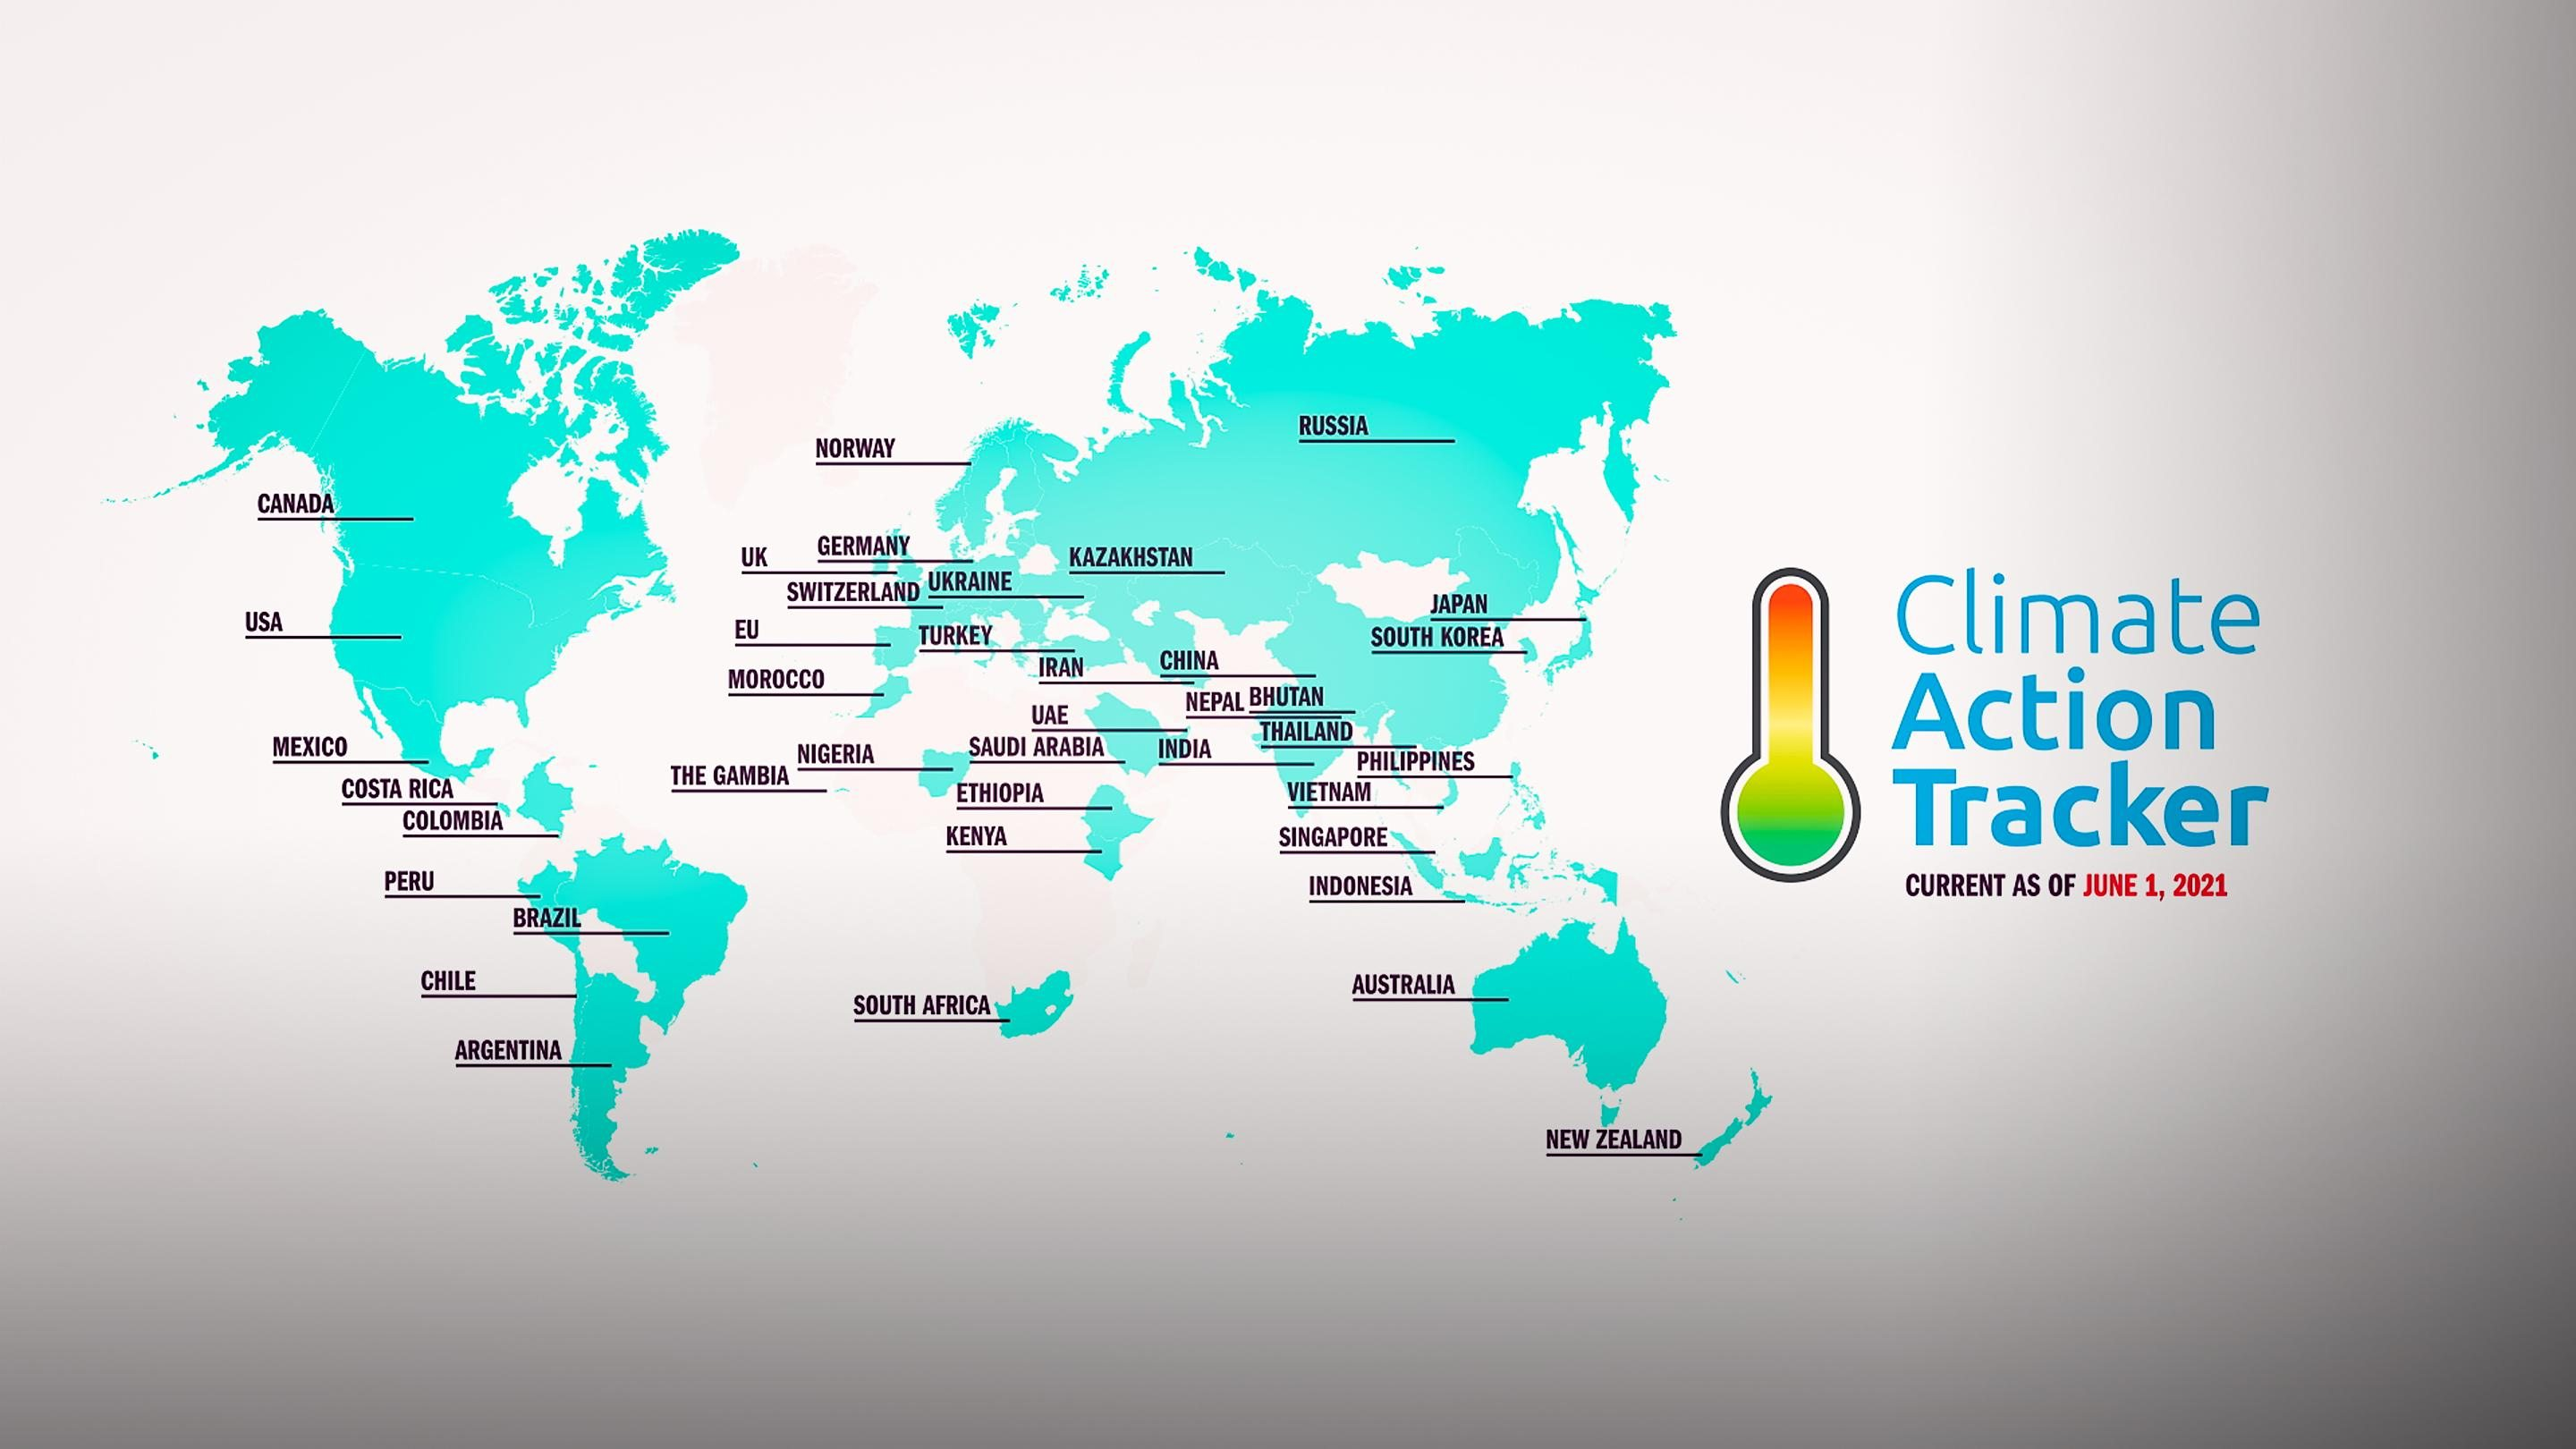 An idea from TED by Climate Action Tracker entitled The state of the climate crisis in 2021